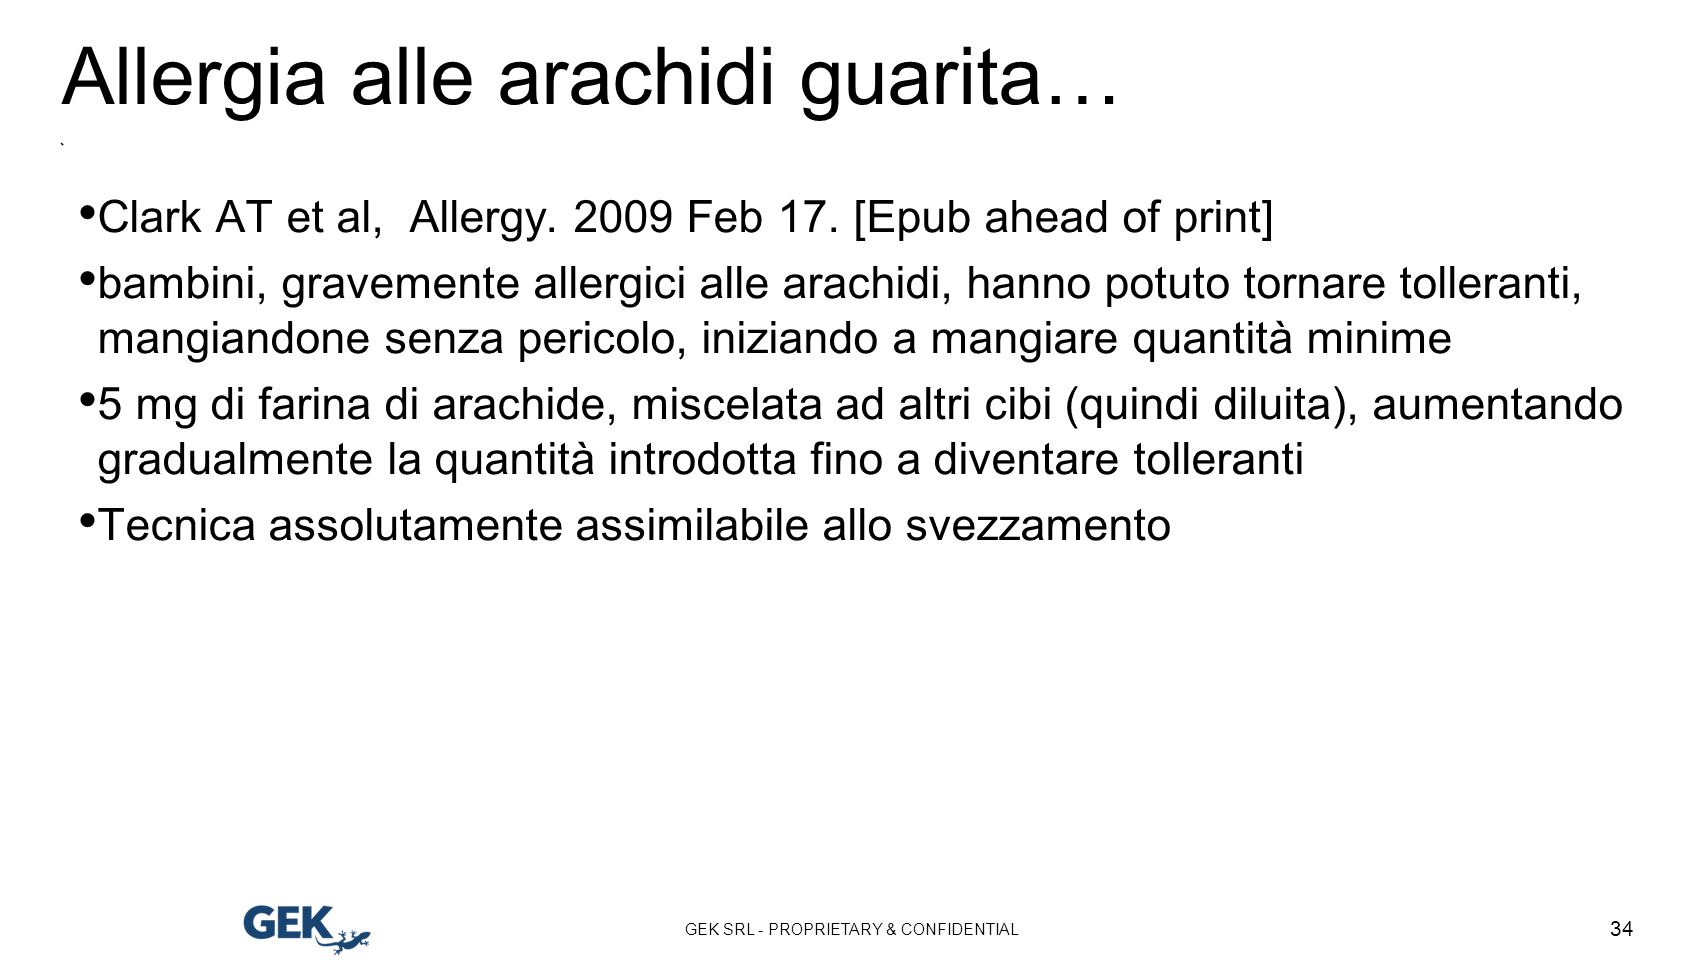 GEK SRL - PROPRIETARY & CONFIDENTIAL 34 Allergia alle arachidi guarita… Clark AT et al, Allergy. 2009 Feb 17. [Epub ahead of print] bambini, gravement